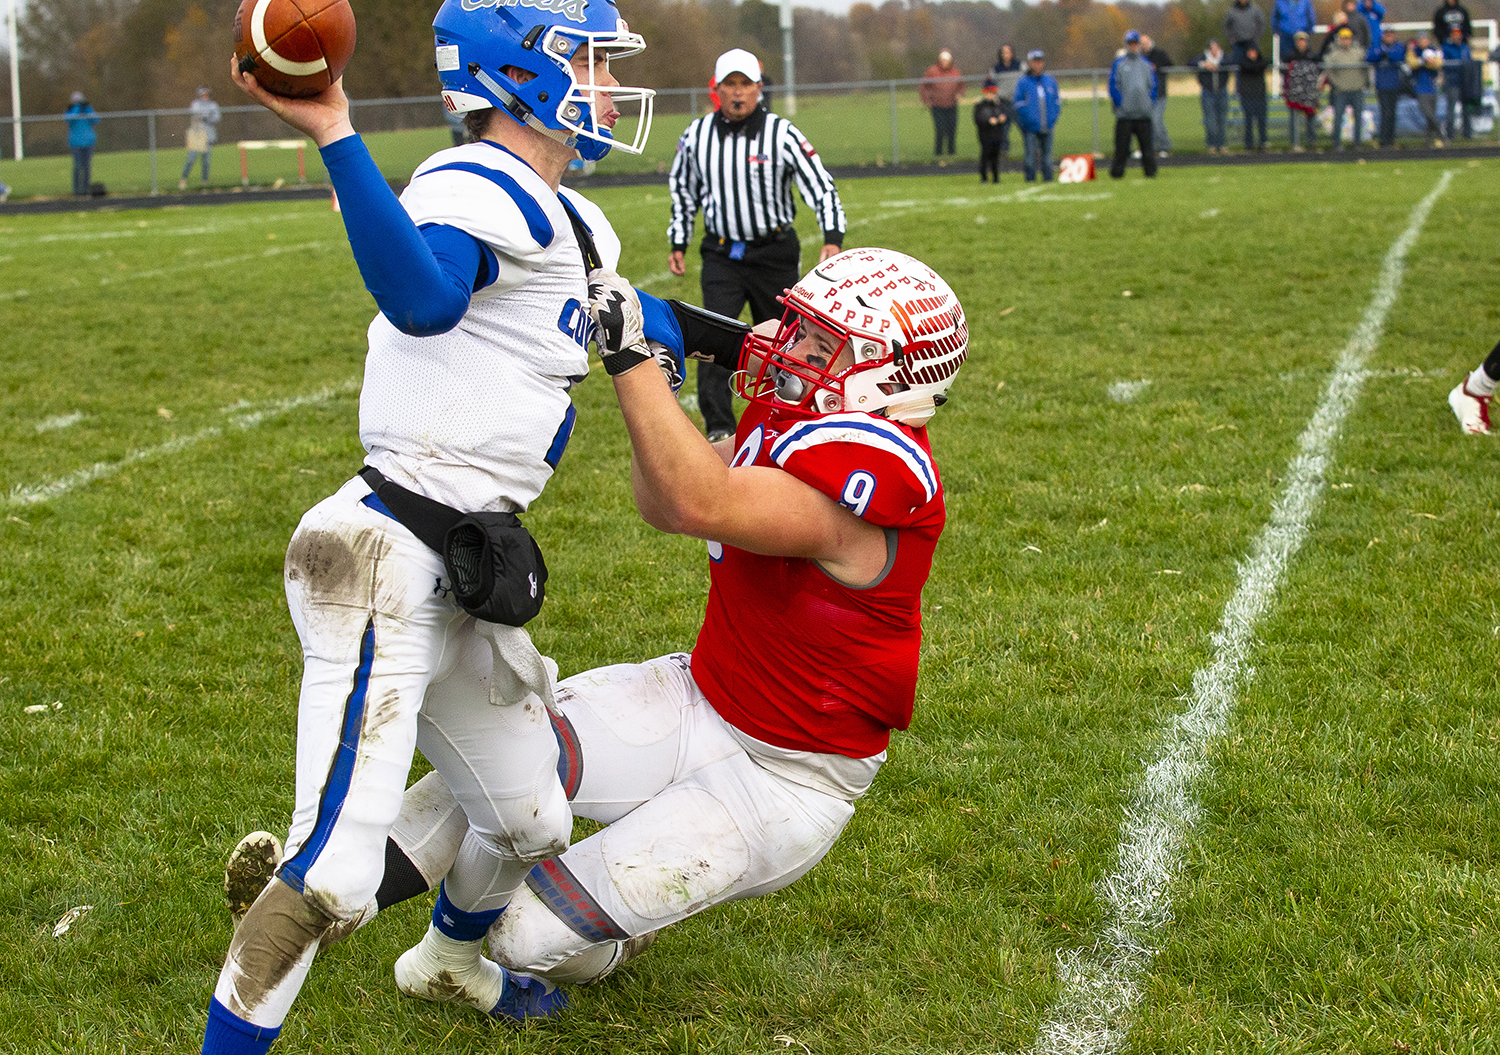 Greenville quarterback Will Harnetiaux gets off a pass as Pleasant Plains' Jake Hermes try to pull him to the grounds during the Class 2A playoff game Saturday, Nov. 3, 2018 at Pleasant Plains High School in Pleasant Plains, Ill. [Rich Saal/The State Journal-Register]